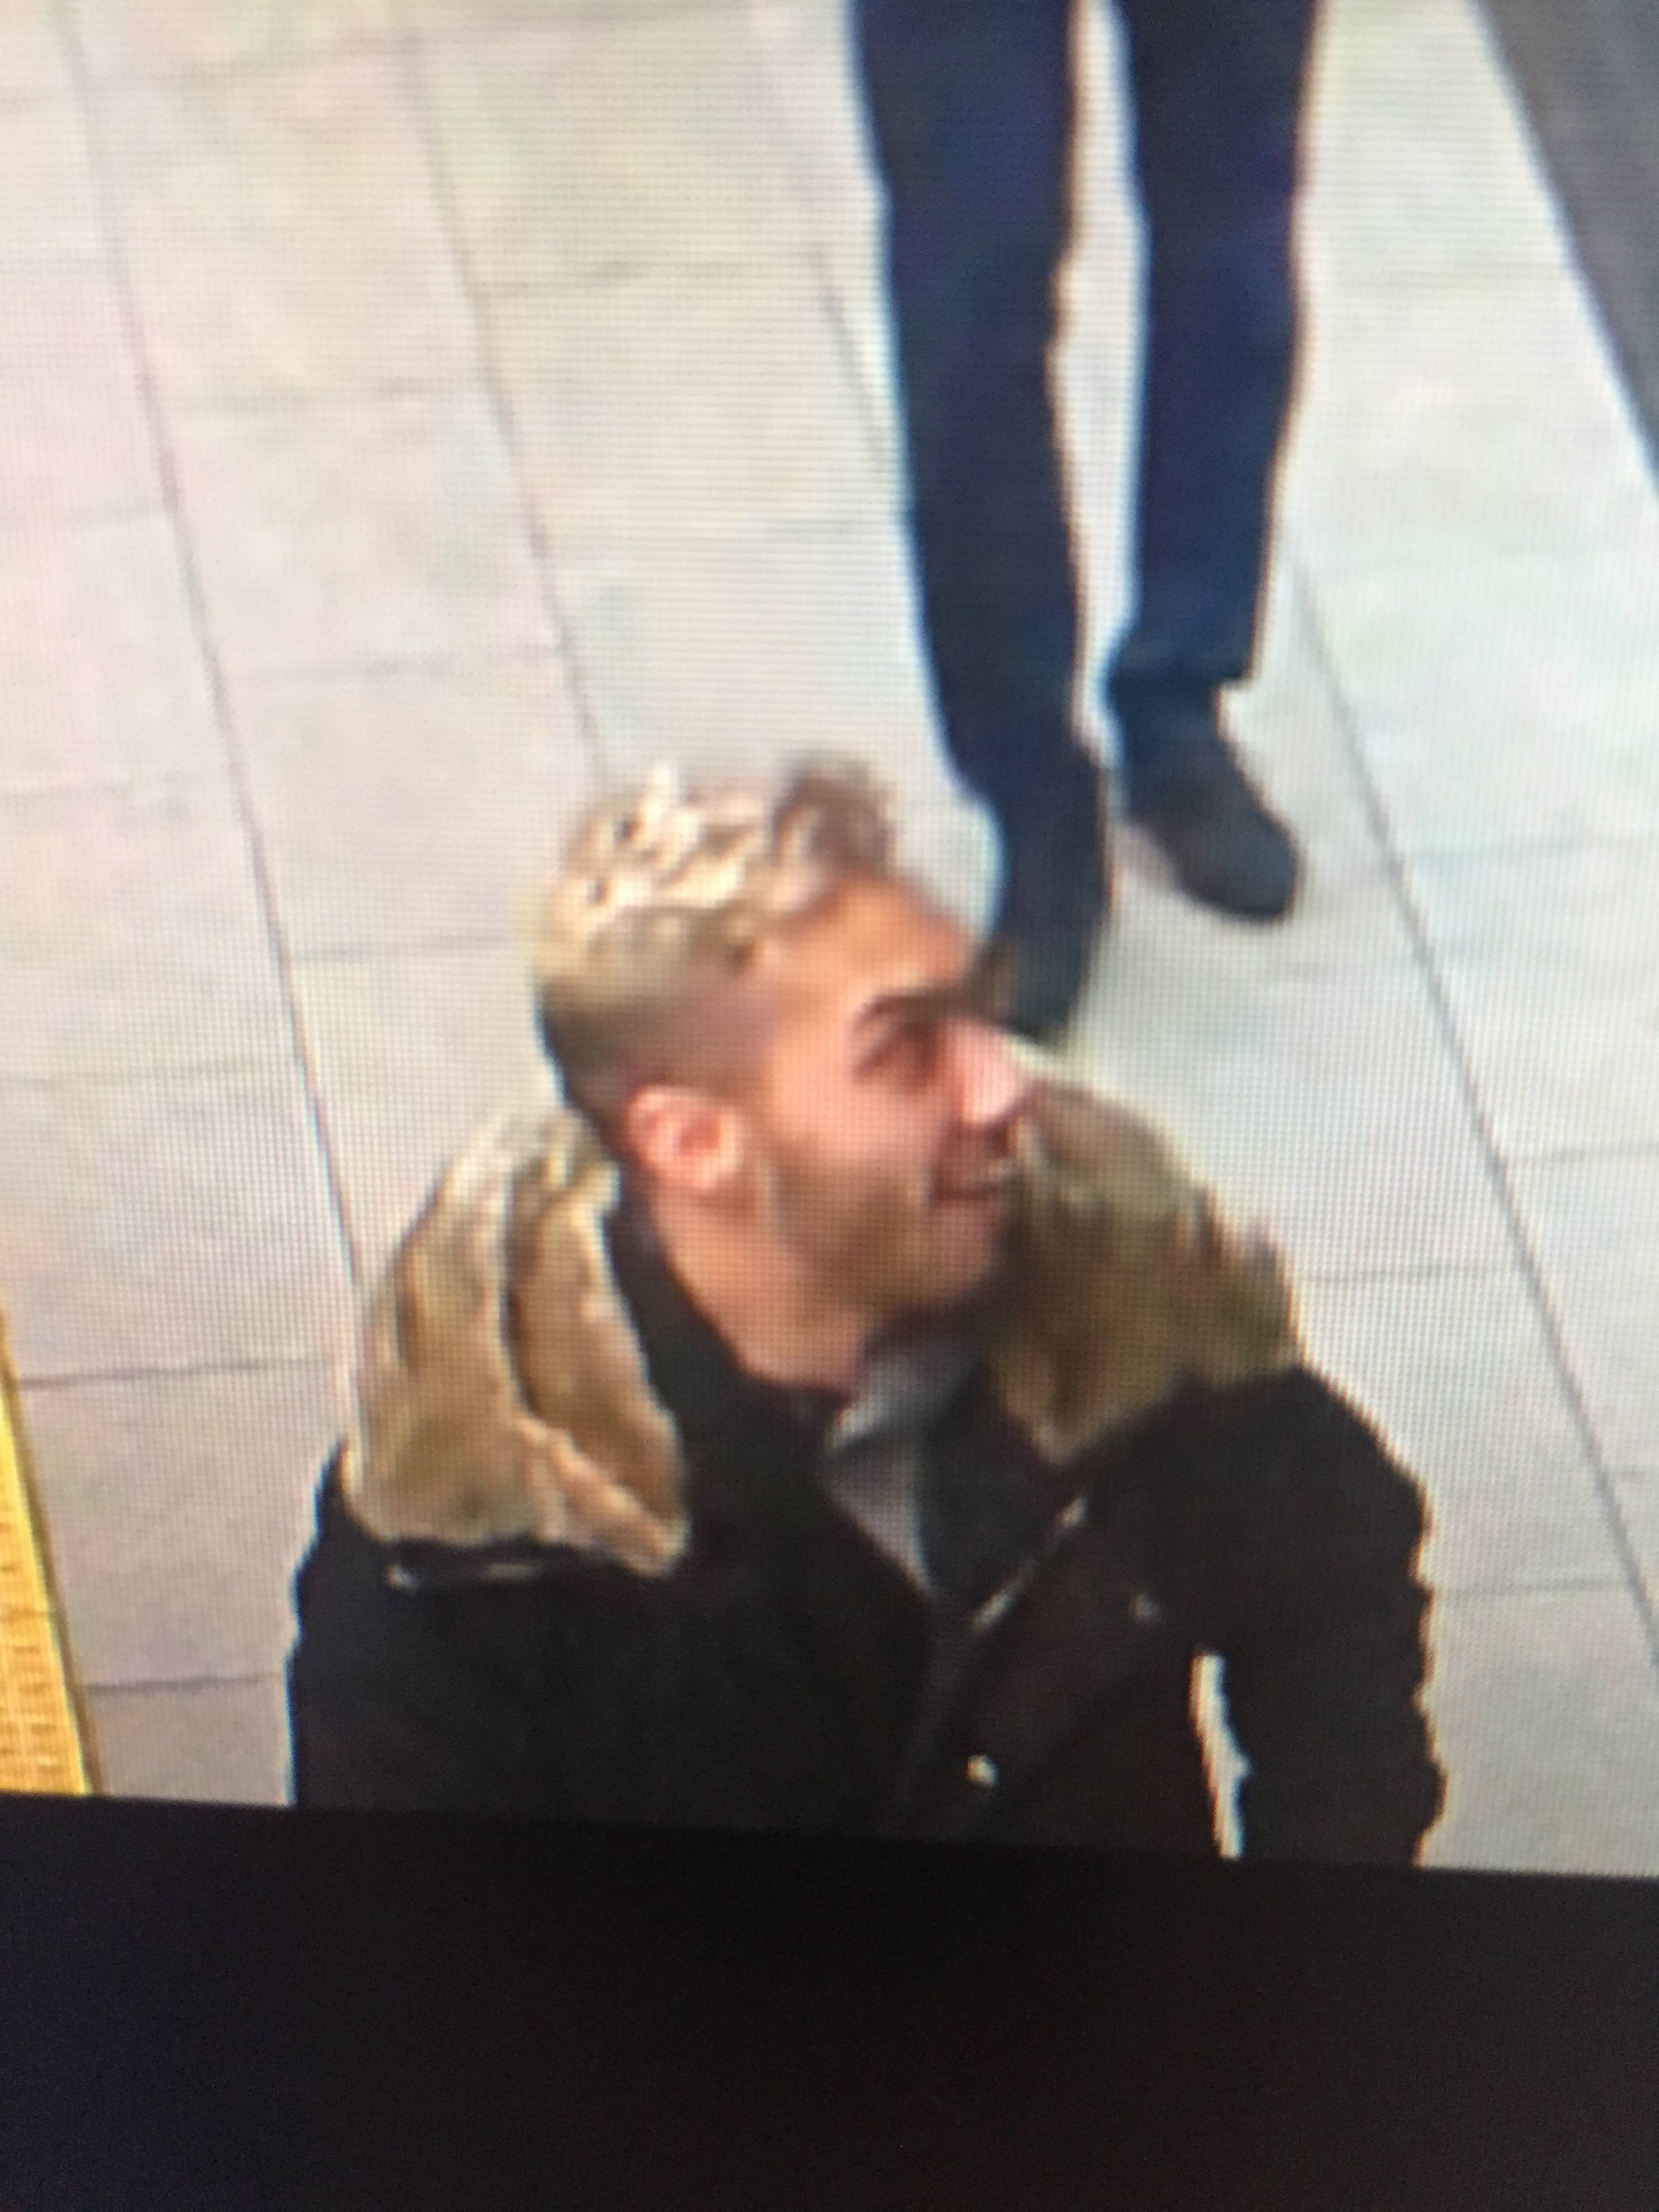 This man has been identified as a suspect in the SkyTrain sexual assault case (Metro Vancouver Transit Police)